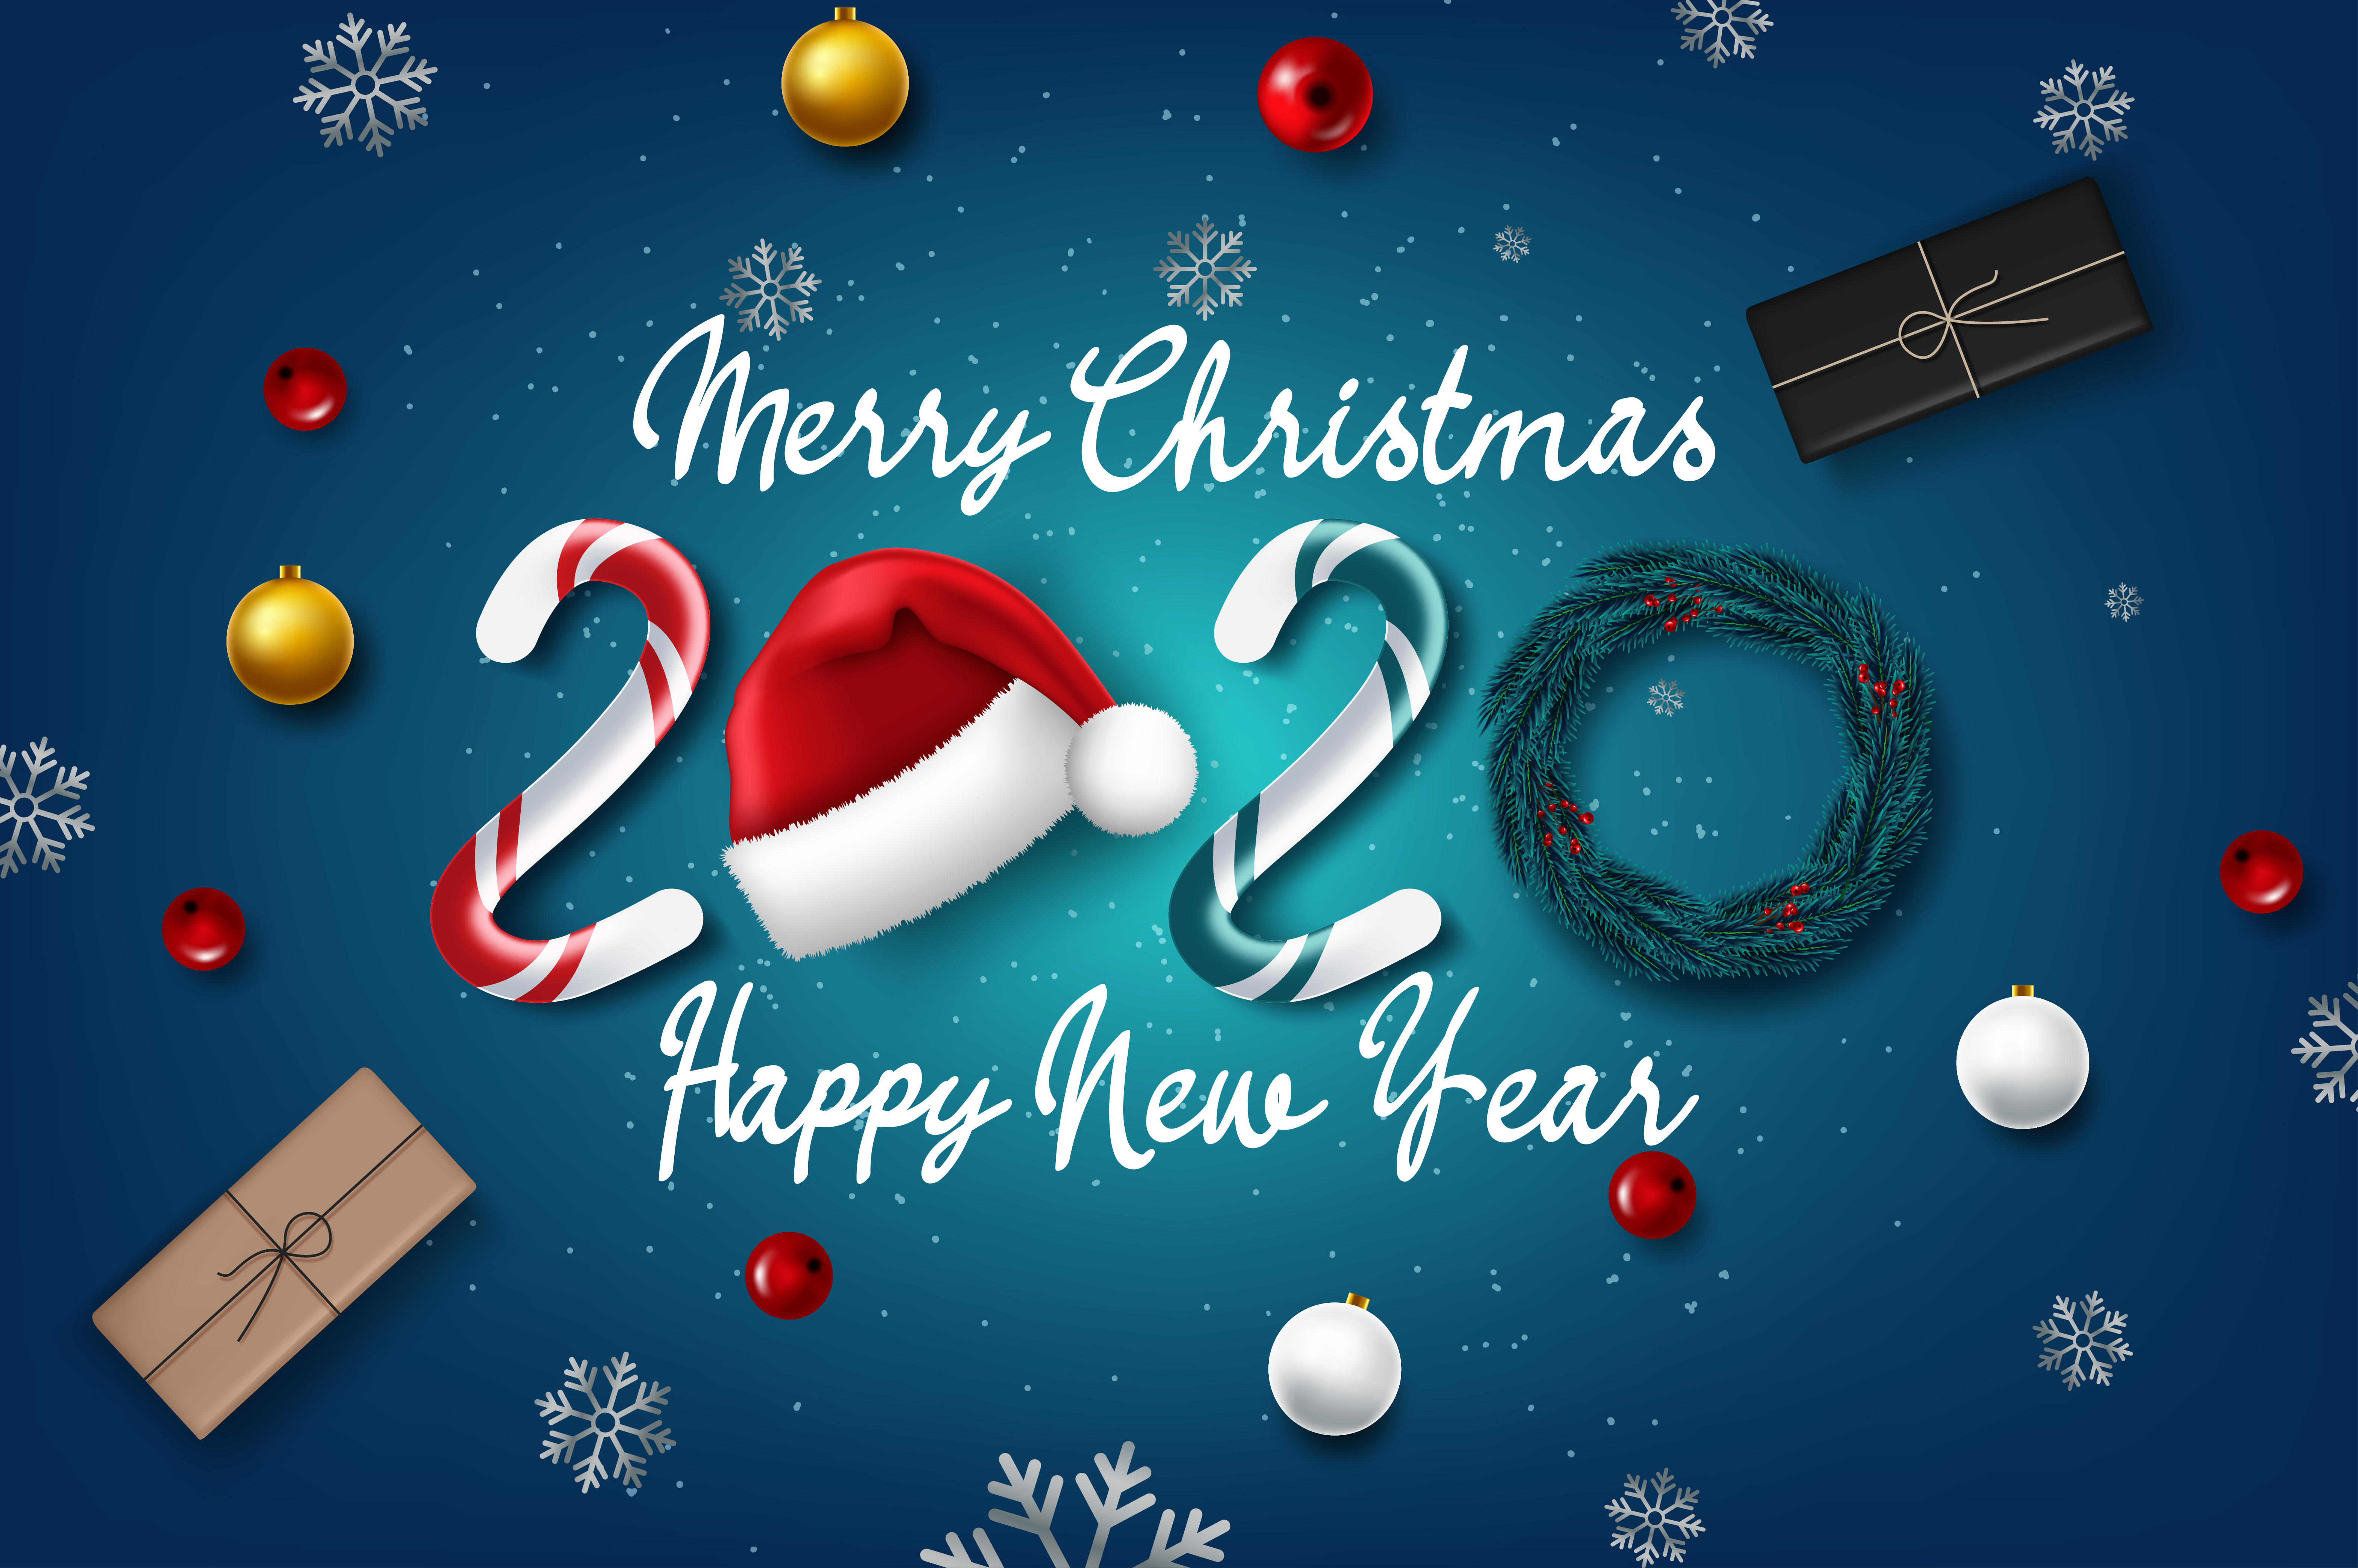 Christmas 2020 2020 new year card with Christmas   Download Free Vectors, Clipart